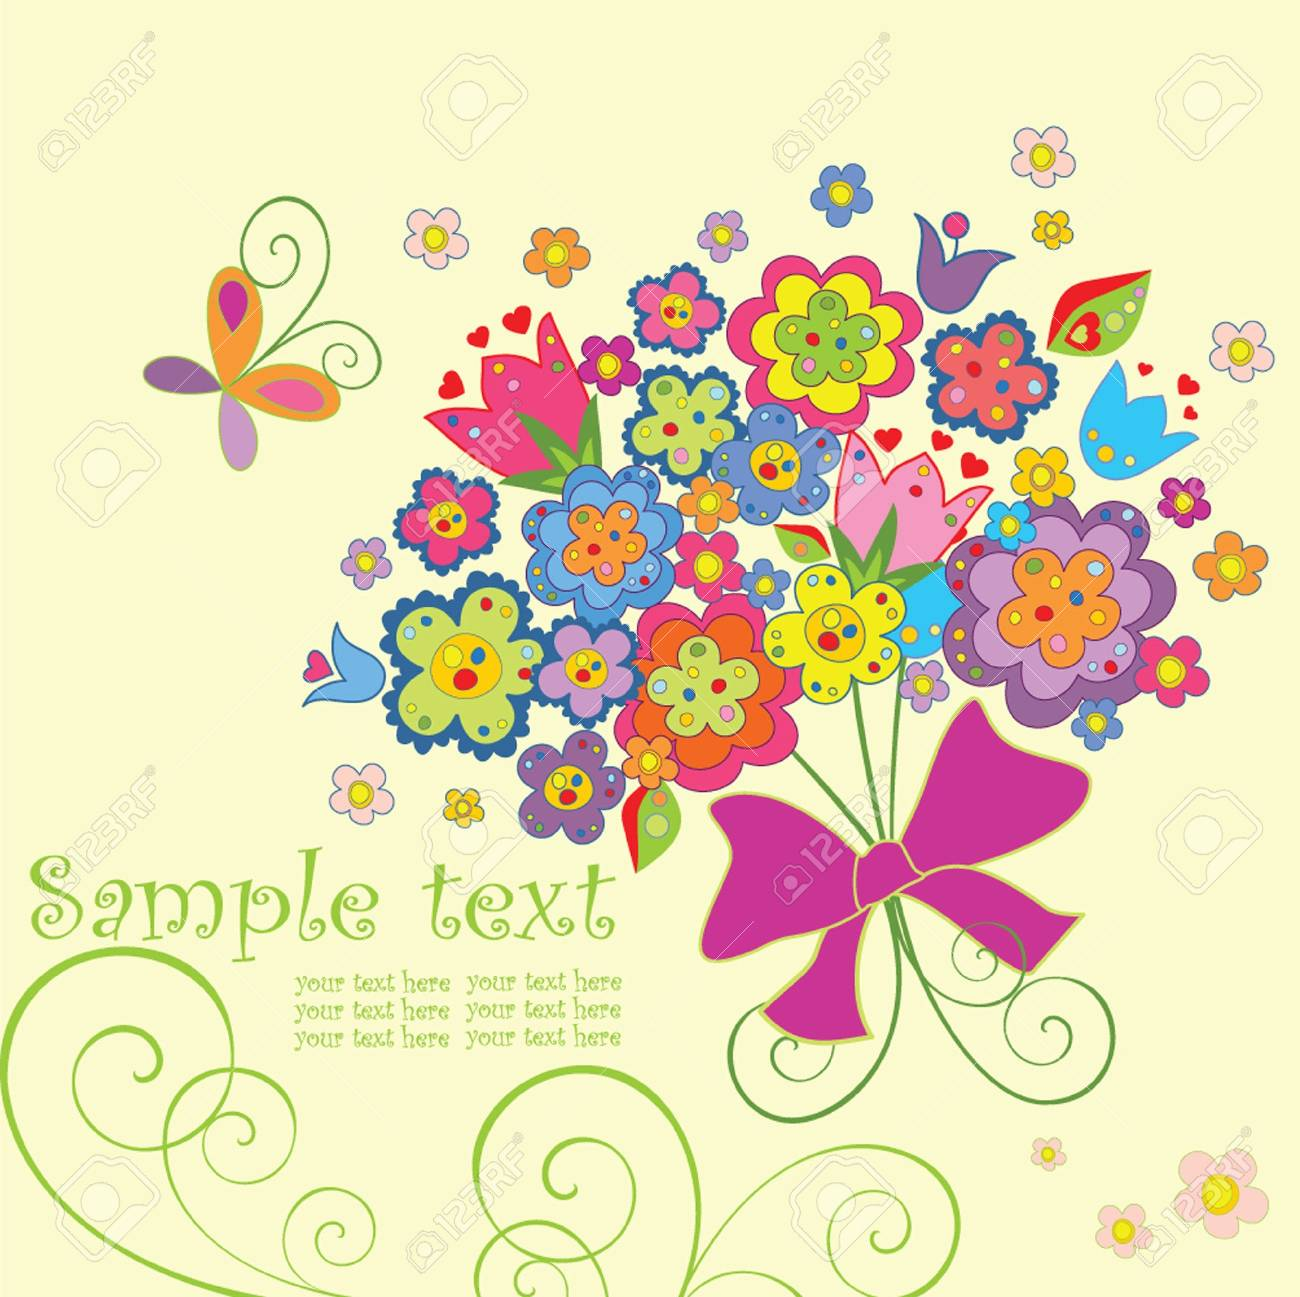 Greeting postcard with funny bouquet Stock Vector - 18858687